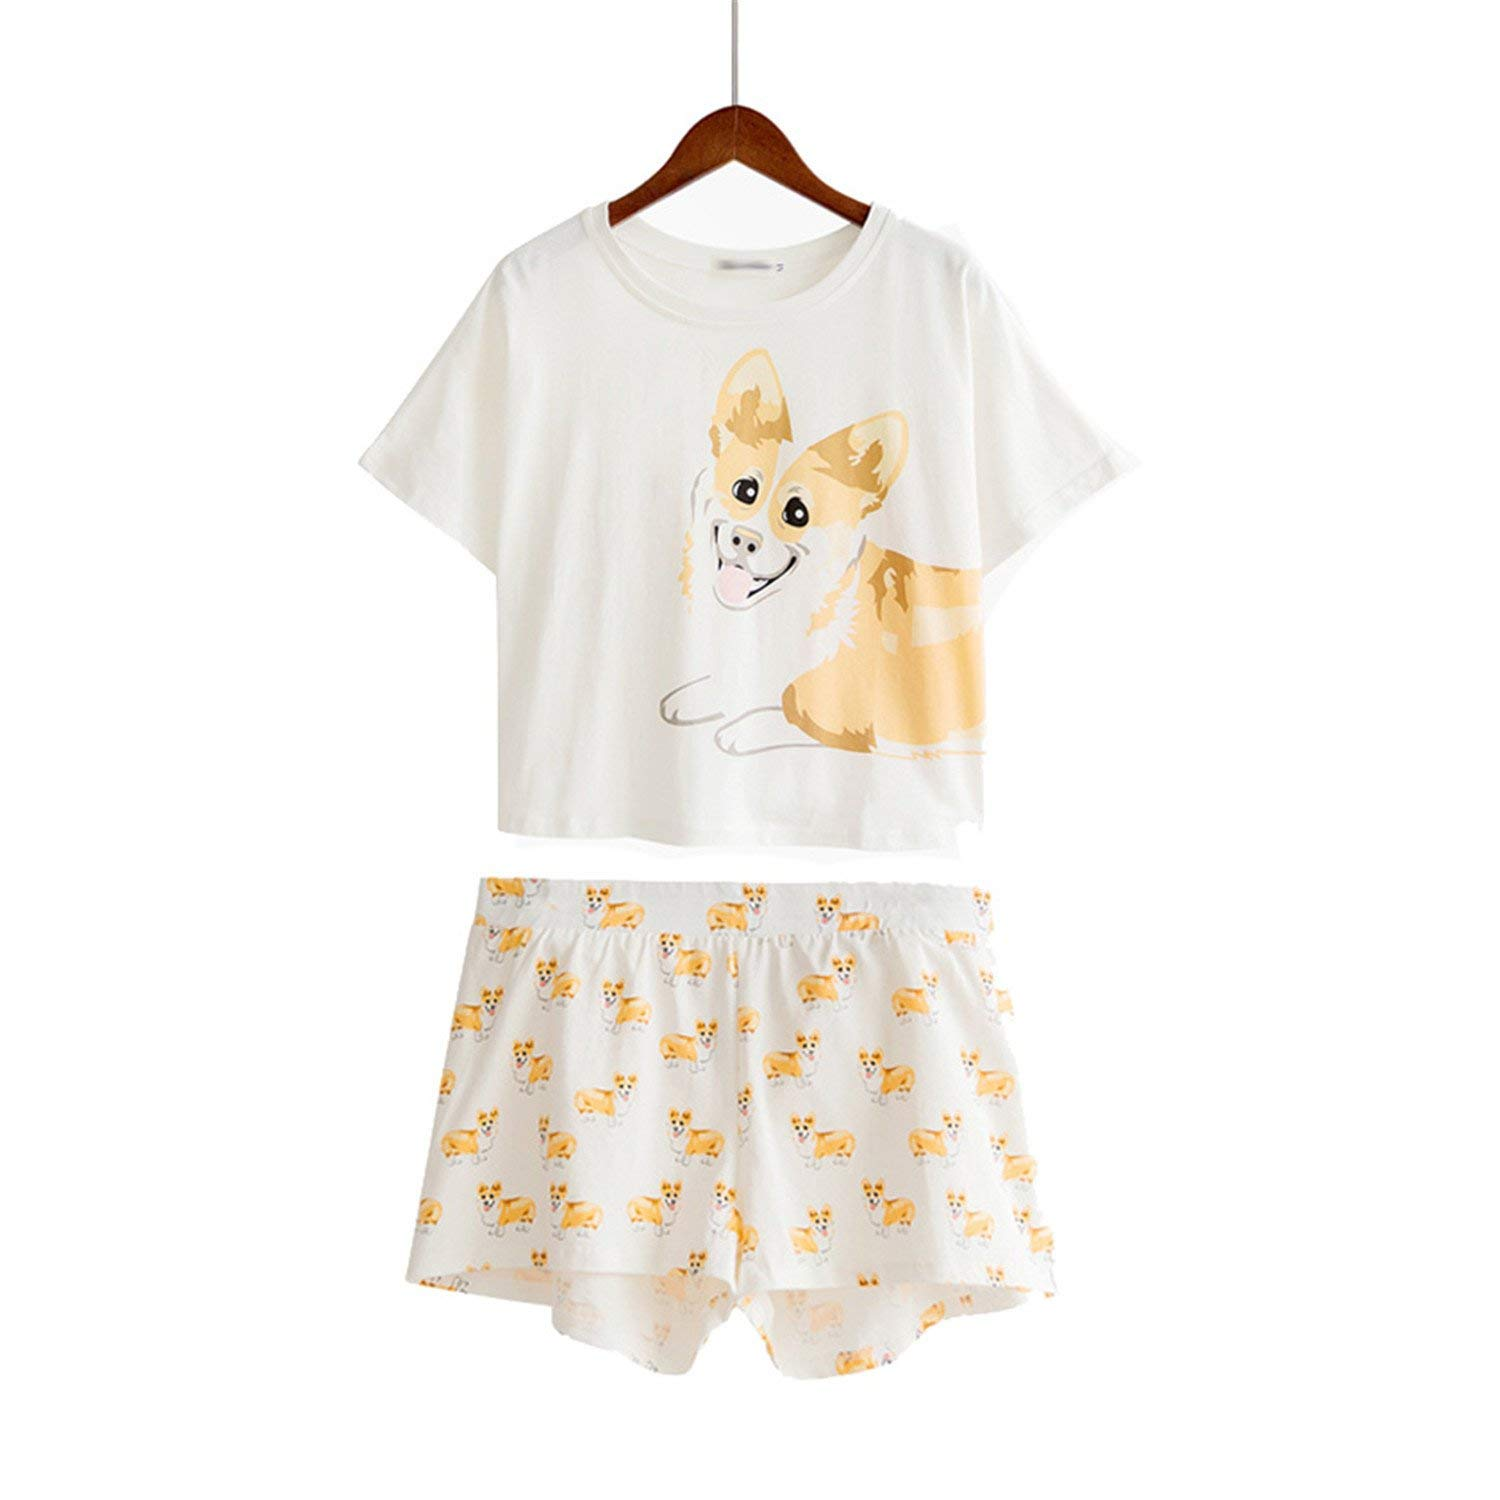 5cfcc76b4f Get Quotations · Dorathywatm Women Cute Dog Print Crop Top + Shorts 2  Pieces Set Cotton Loose Elastic Waist